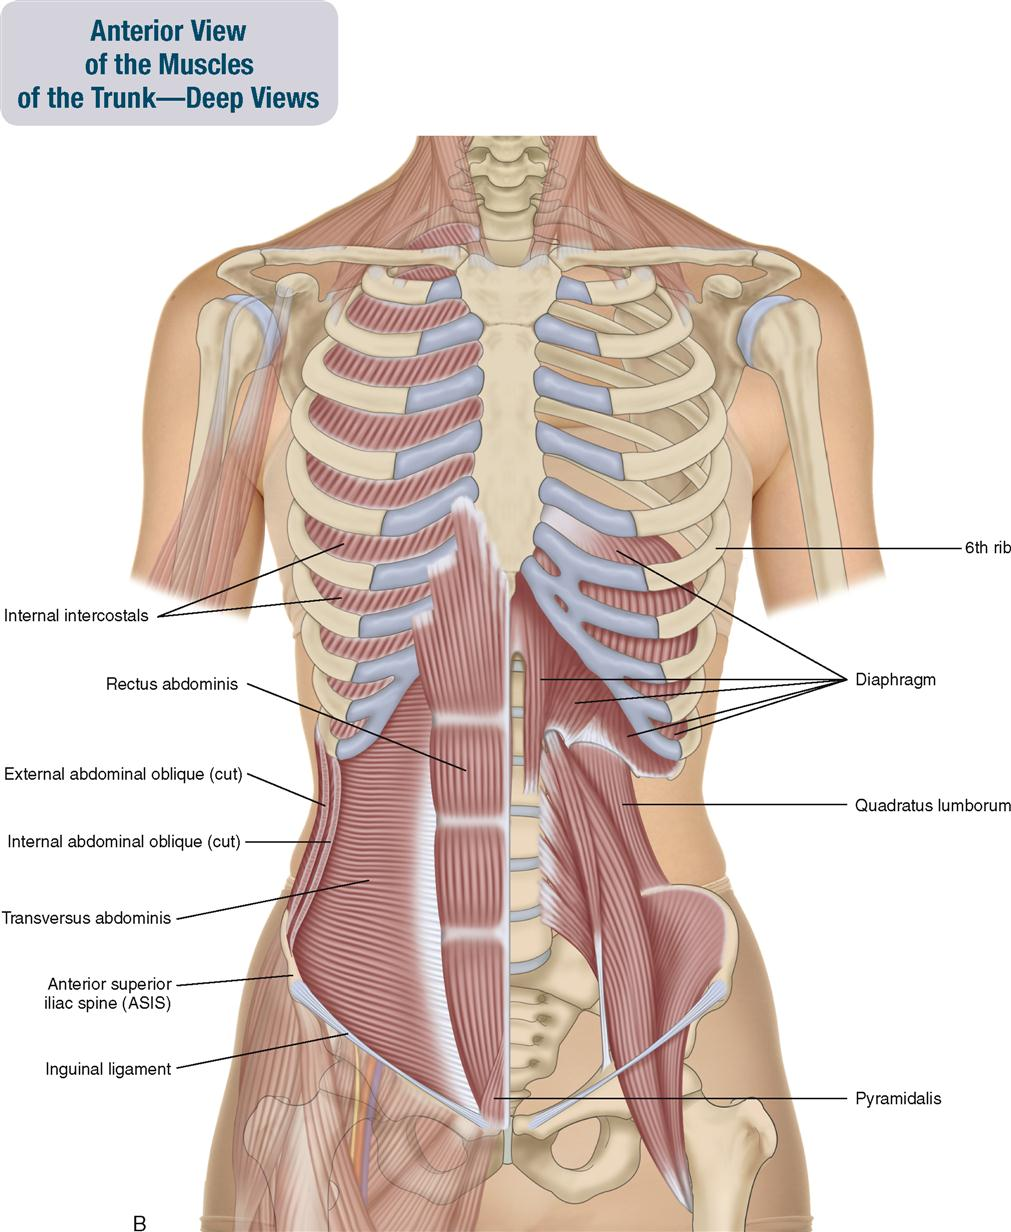 8 muscles of the spine and rib cage musculoskeletal key figure 8 2 a anterior view of the muscles of the trunksuperficial view on the right and an intermediate view on the left the muscles of the neck and ccuart Gallery